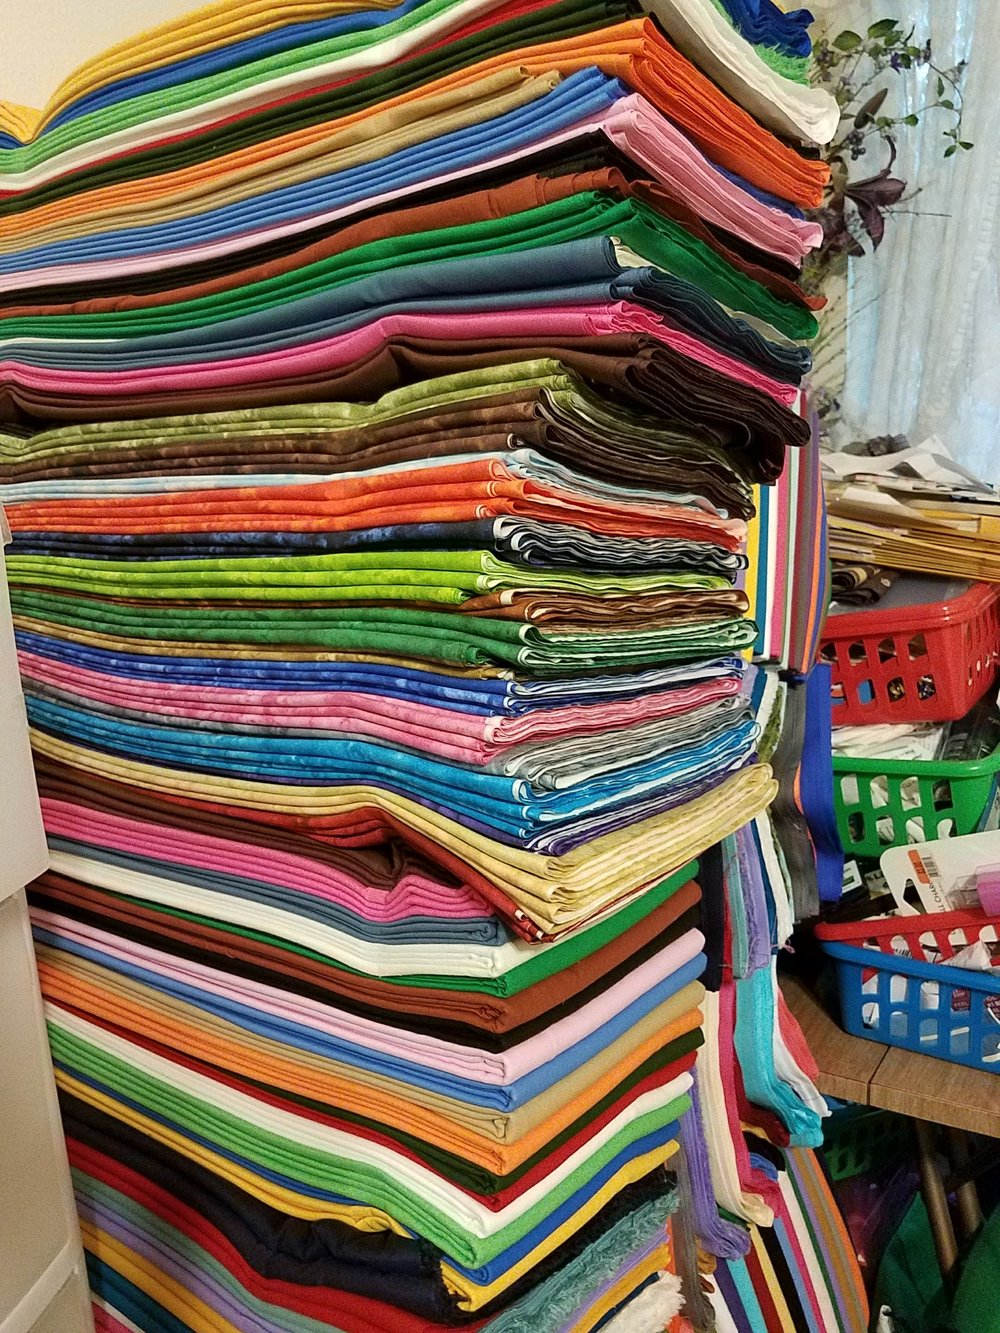 I know there is some fabric mixed in here that is not solid, but this is piled pretty high. I left the picture uncropped so you can could see more solids peeking around the back as well.